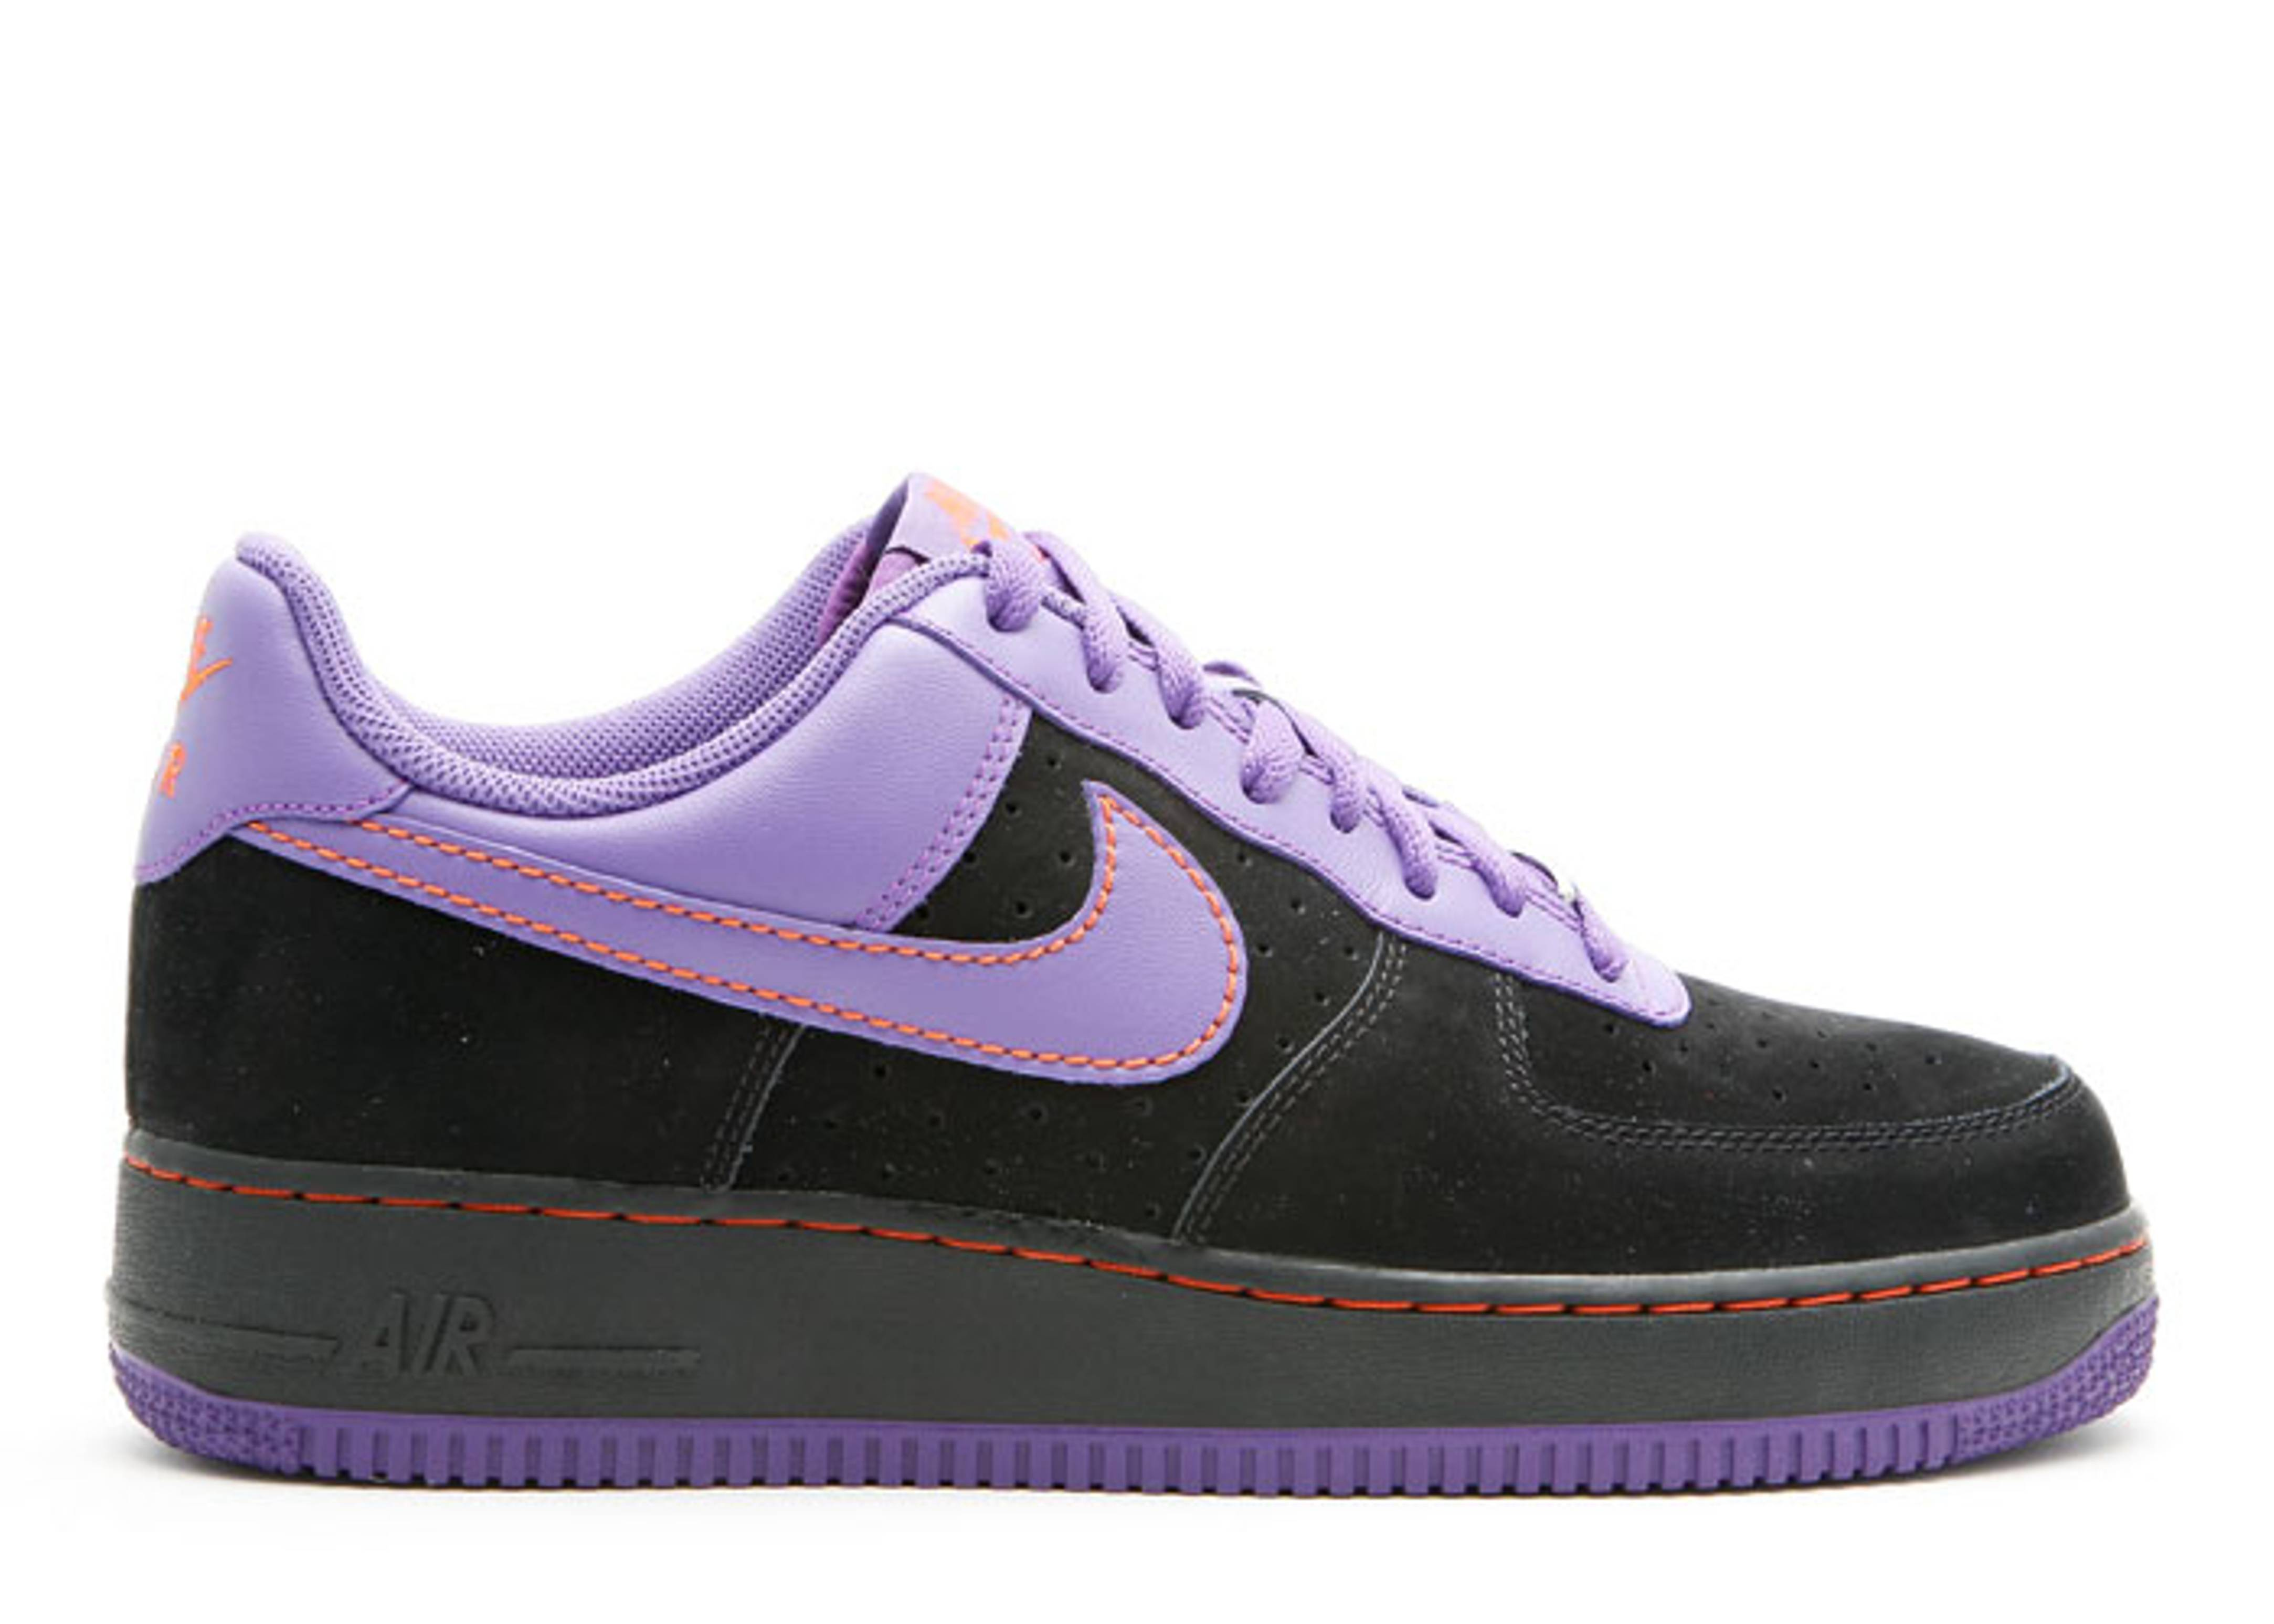 new arrival fede5 f61bd Air Force 1 Low